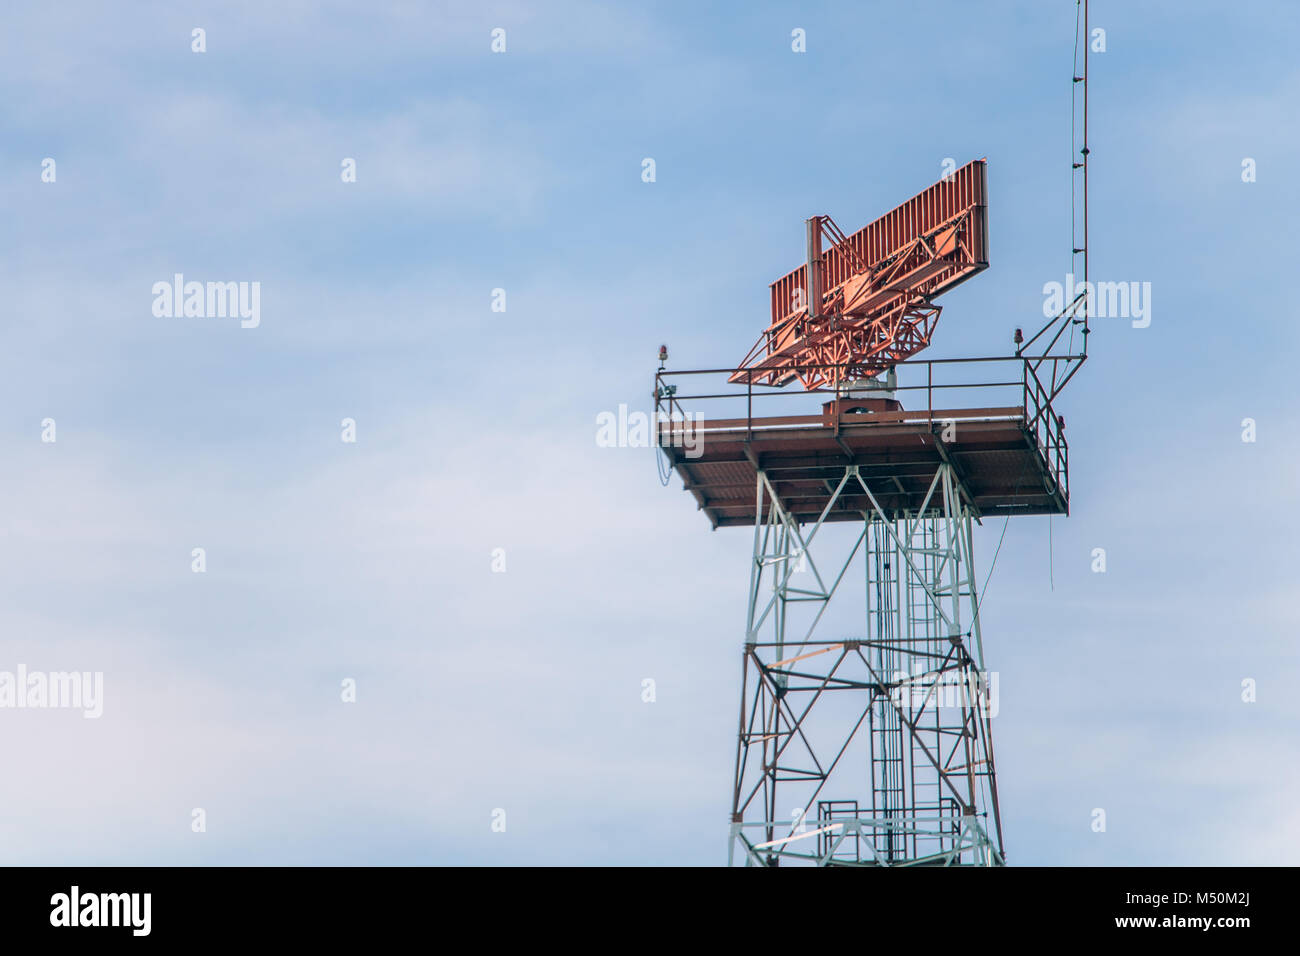 The radar rotates on the tower. The radar works on the steel construction. - Stock Image